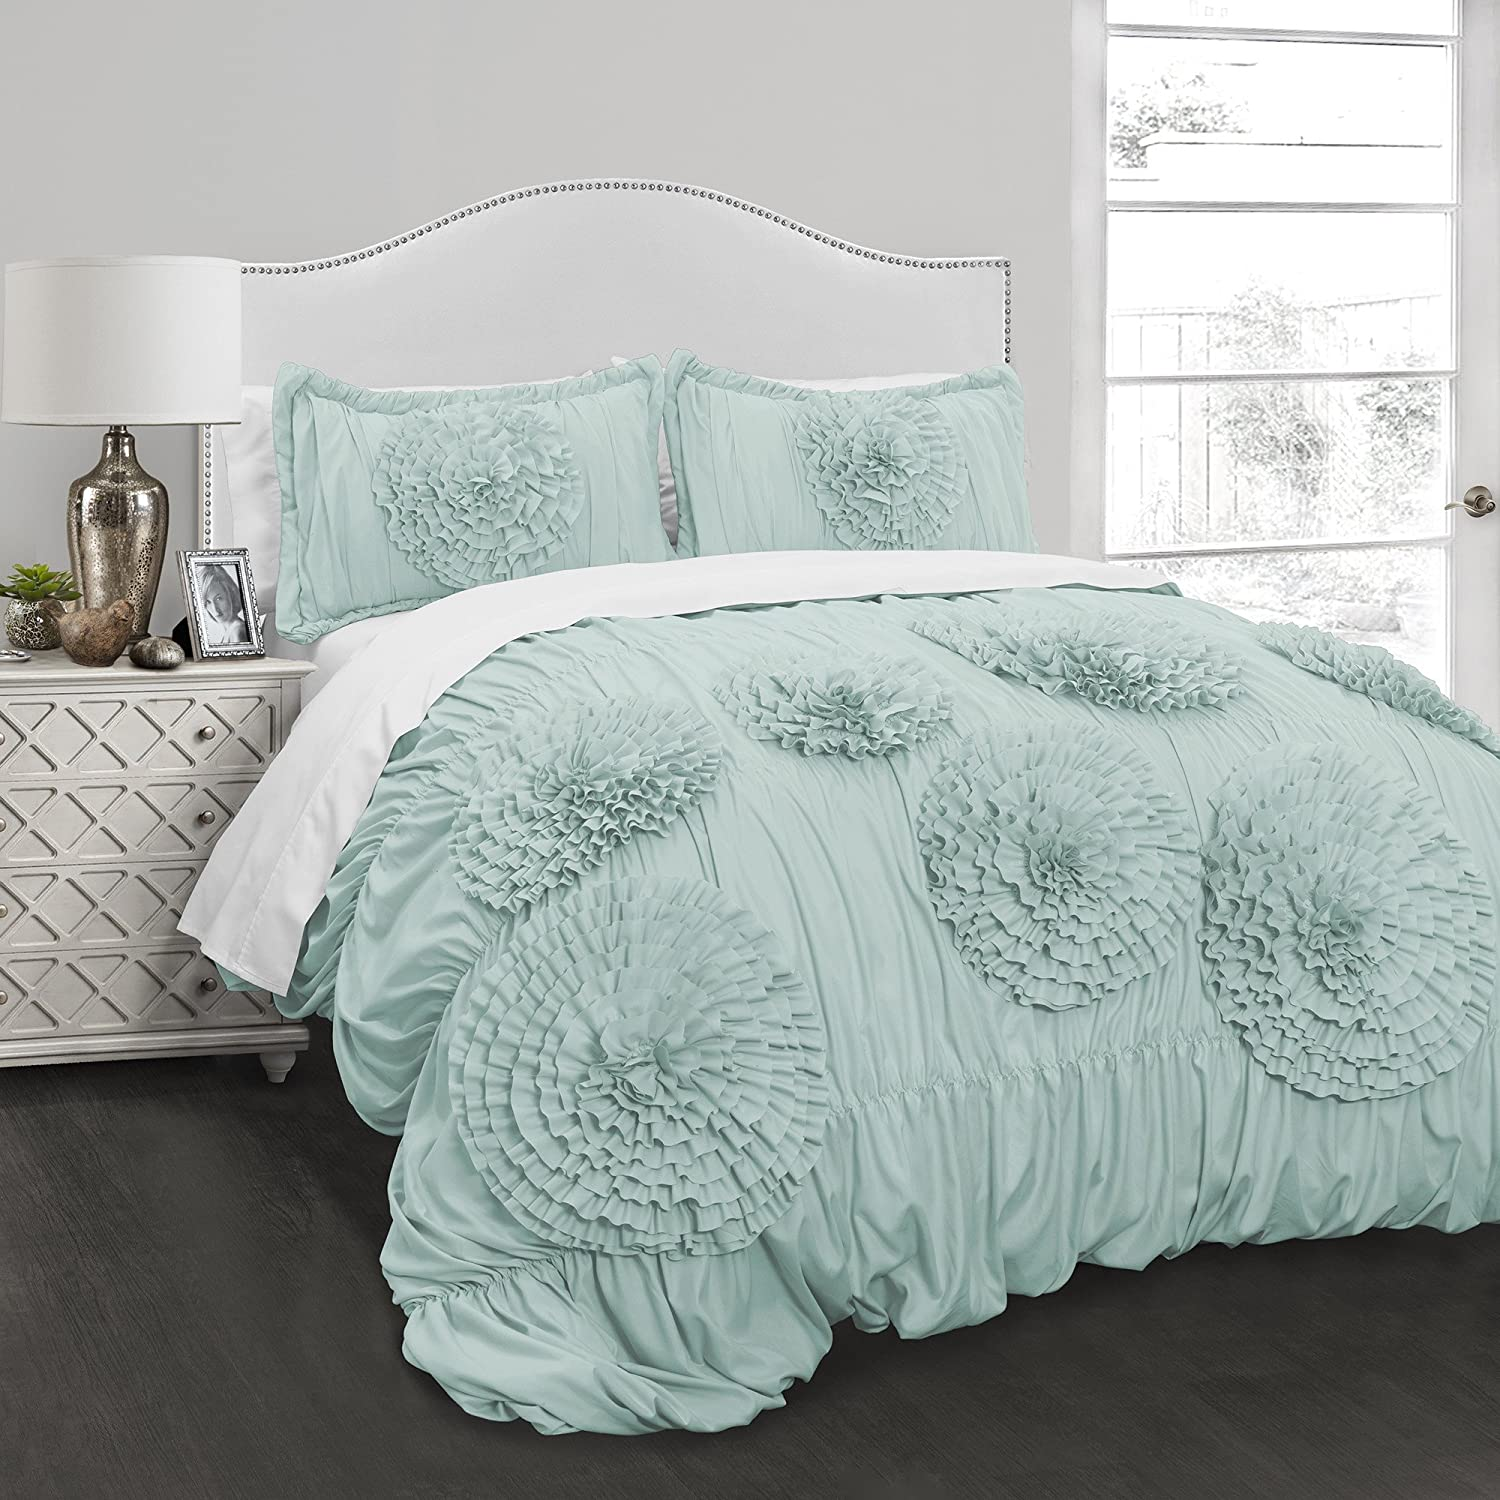 Ln 3 Piece Kids Aqua Blue Luxury Ruffle Floral Pattern Comforter Full Queen Set, Handcrafted Ruffled Light Blue Flowers Bedding Ruched Texture Design, Boho Chic Hippie Indie Bohemian Style, Polyester